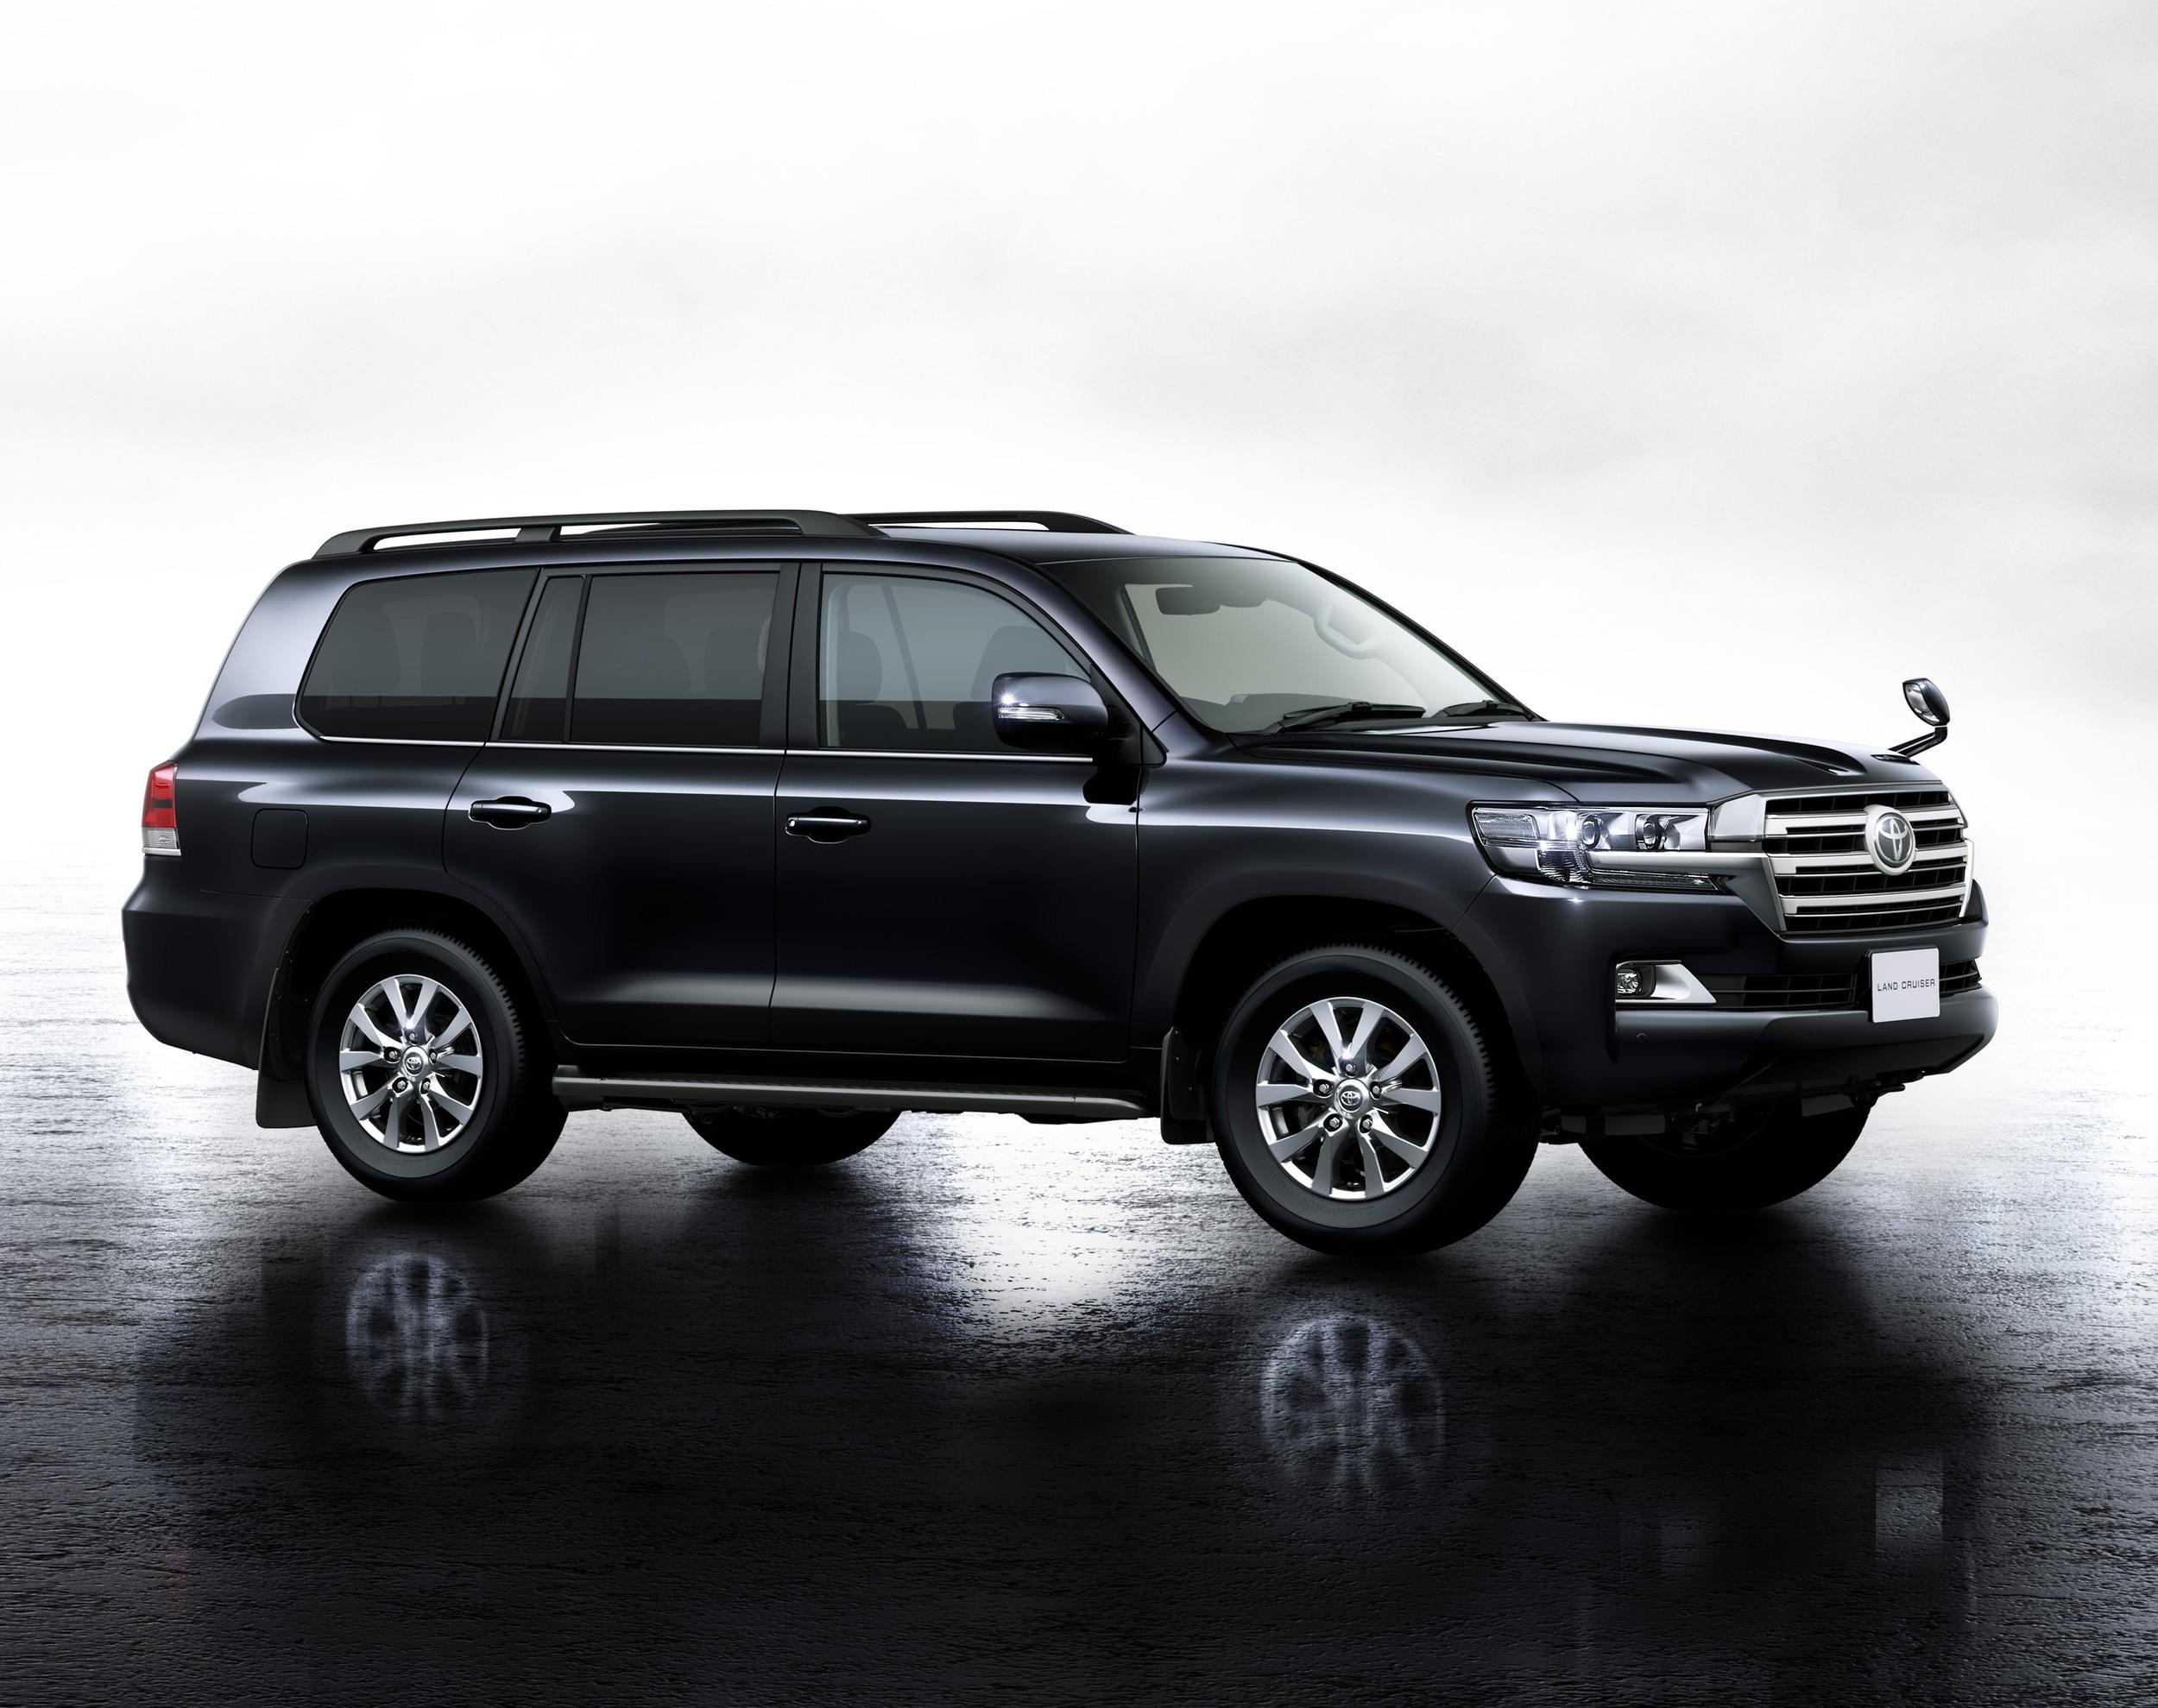 facelifted 2016 toyota land cruiser announced youwheel your car expert. Black Bedroom Furniture Sets. Home Design Ideas